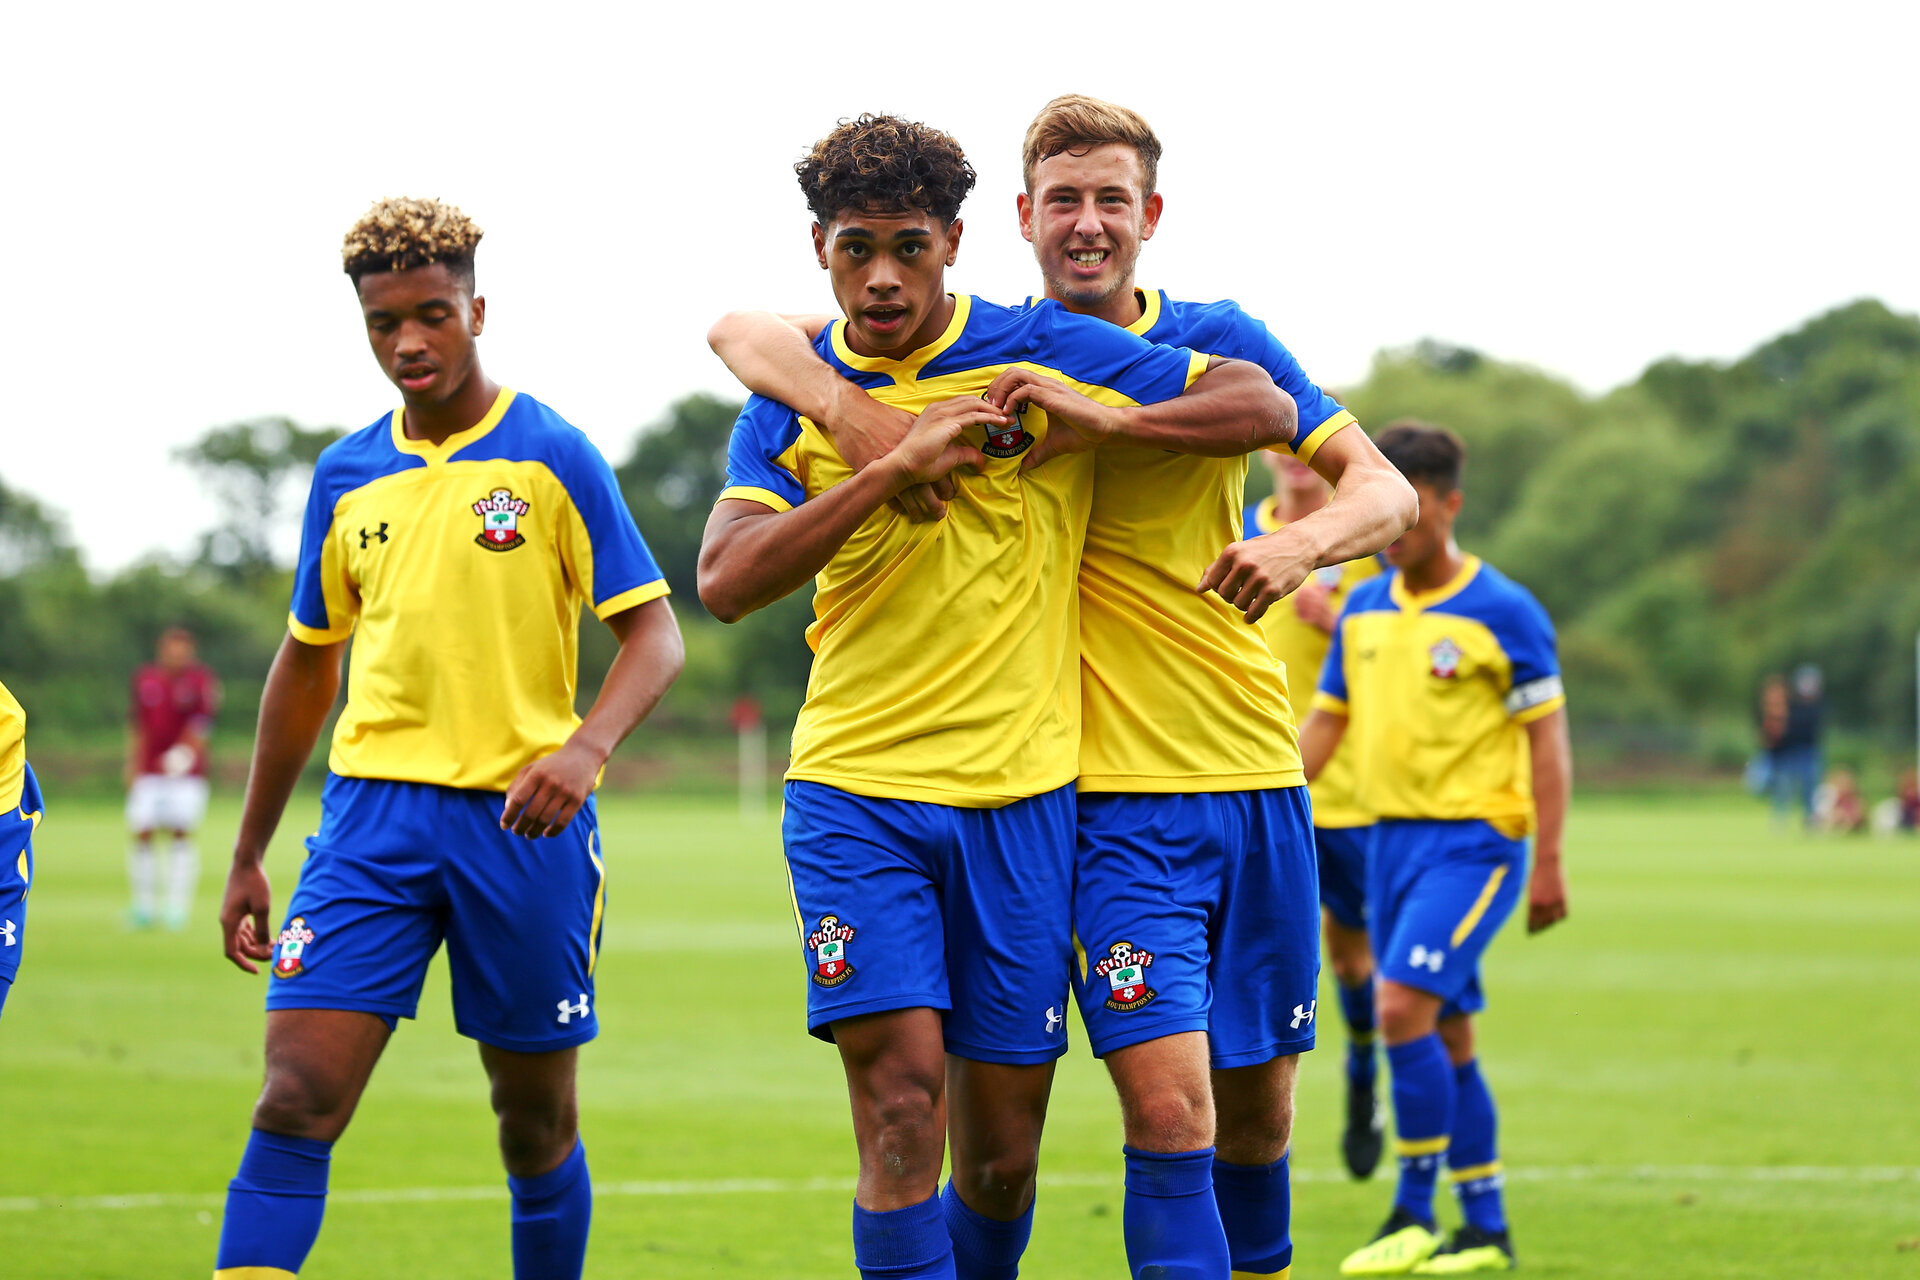 LONDON, ENGLAND - AUGUST 18: Christian Norton (middle) celebrates after scoring during an U18 Premier League match between  Southampton FC and West Ham United at Little Heath Training Ground on August 16, 2018 in London, England. (Photo by James Bridle - Southampton FC/Southampton FC via Getty Images)